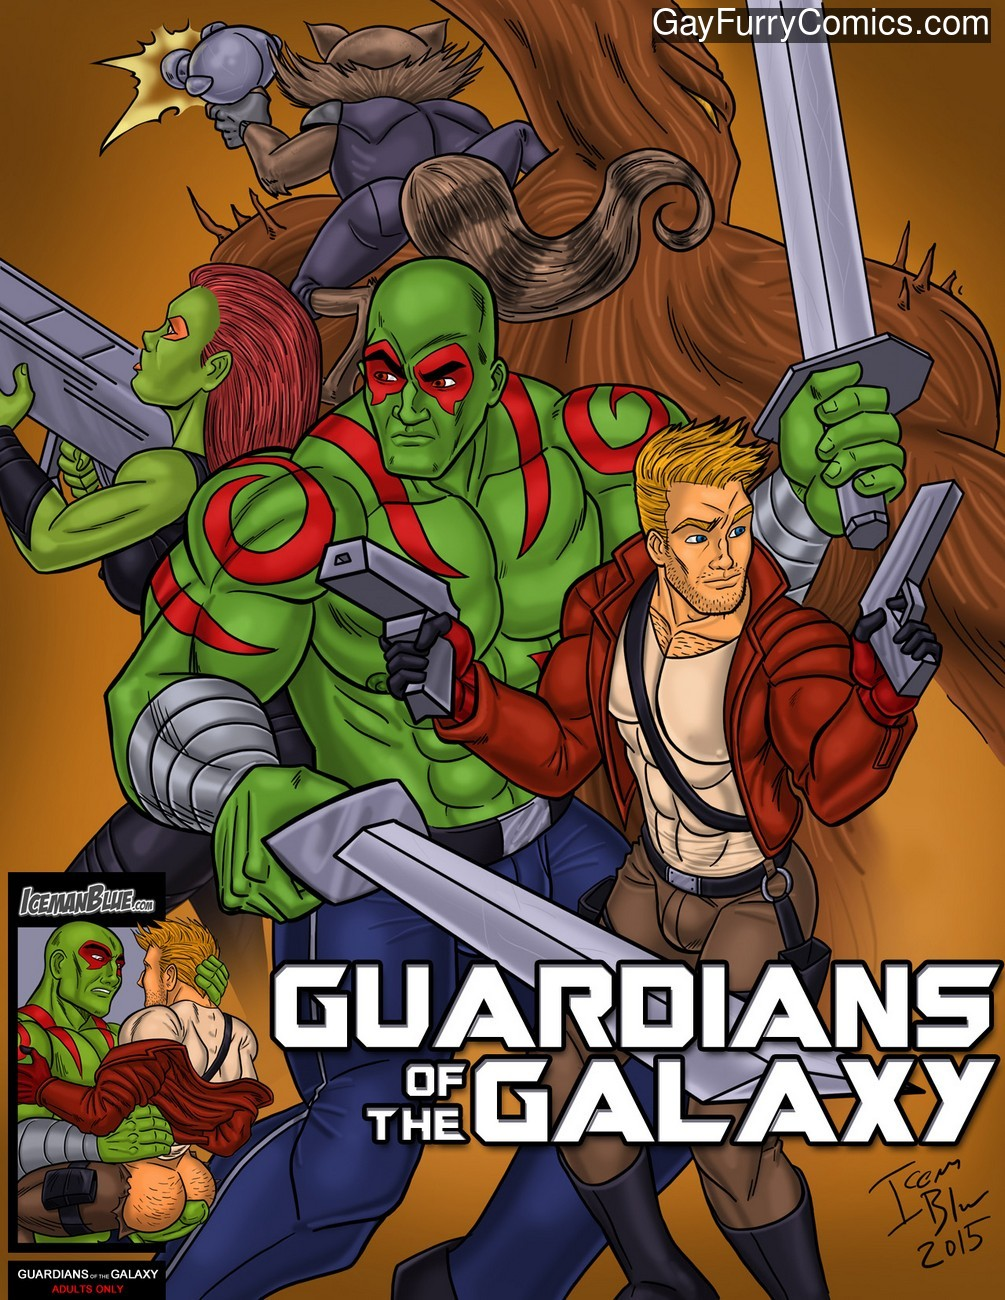 Guardians Of The Galaxy gay furry comic